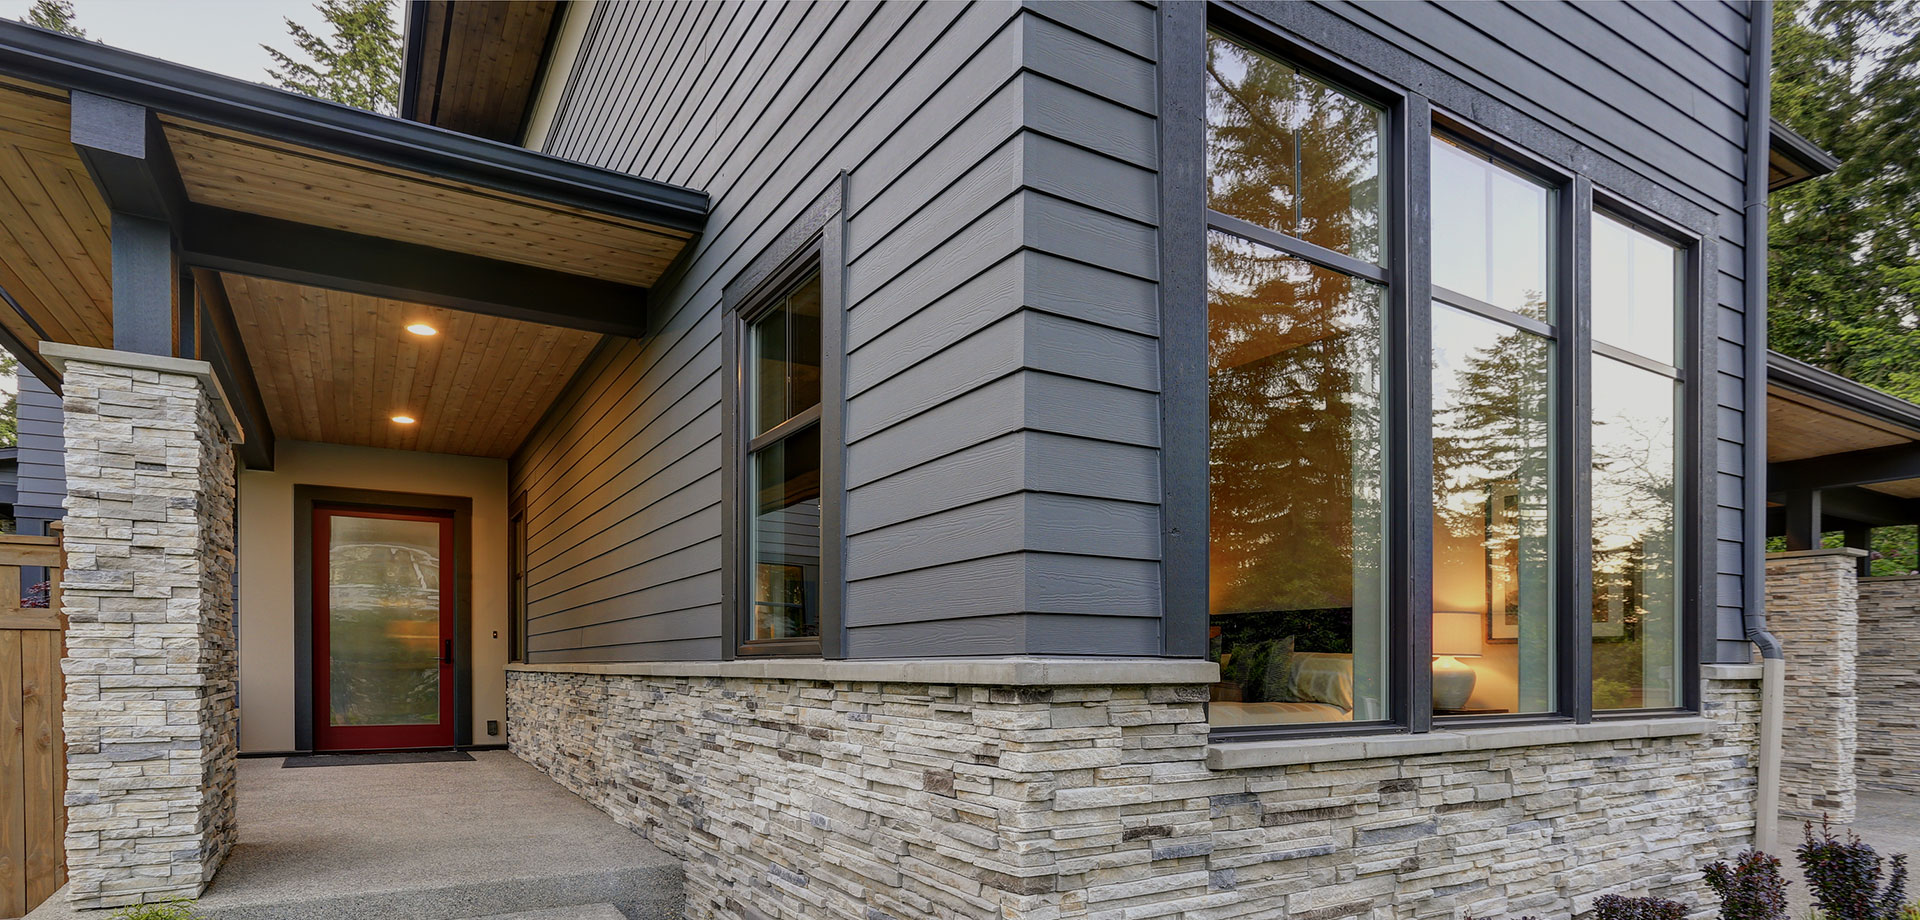 Add Value to Your Home With New Siding